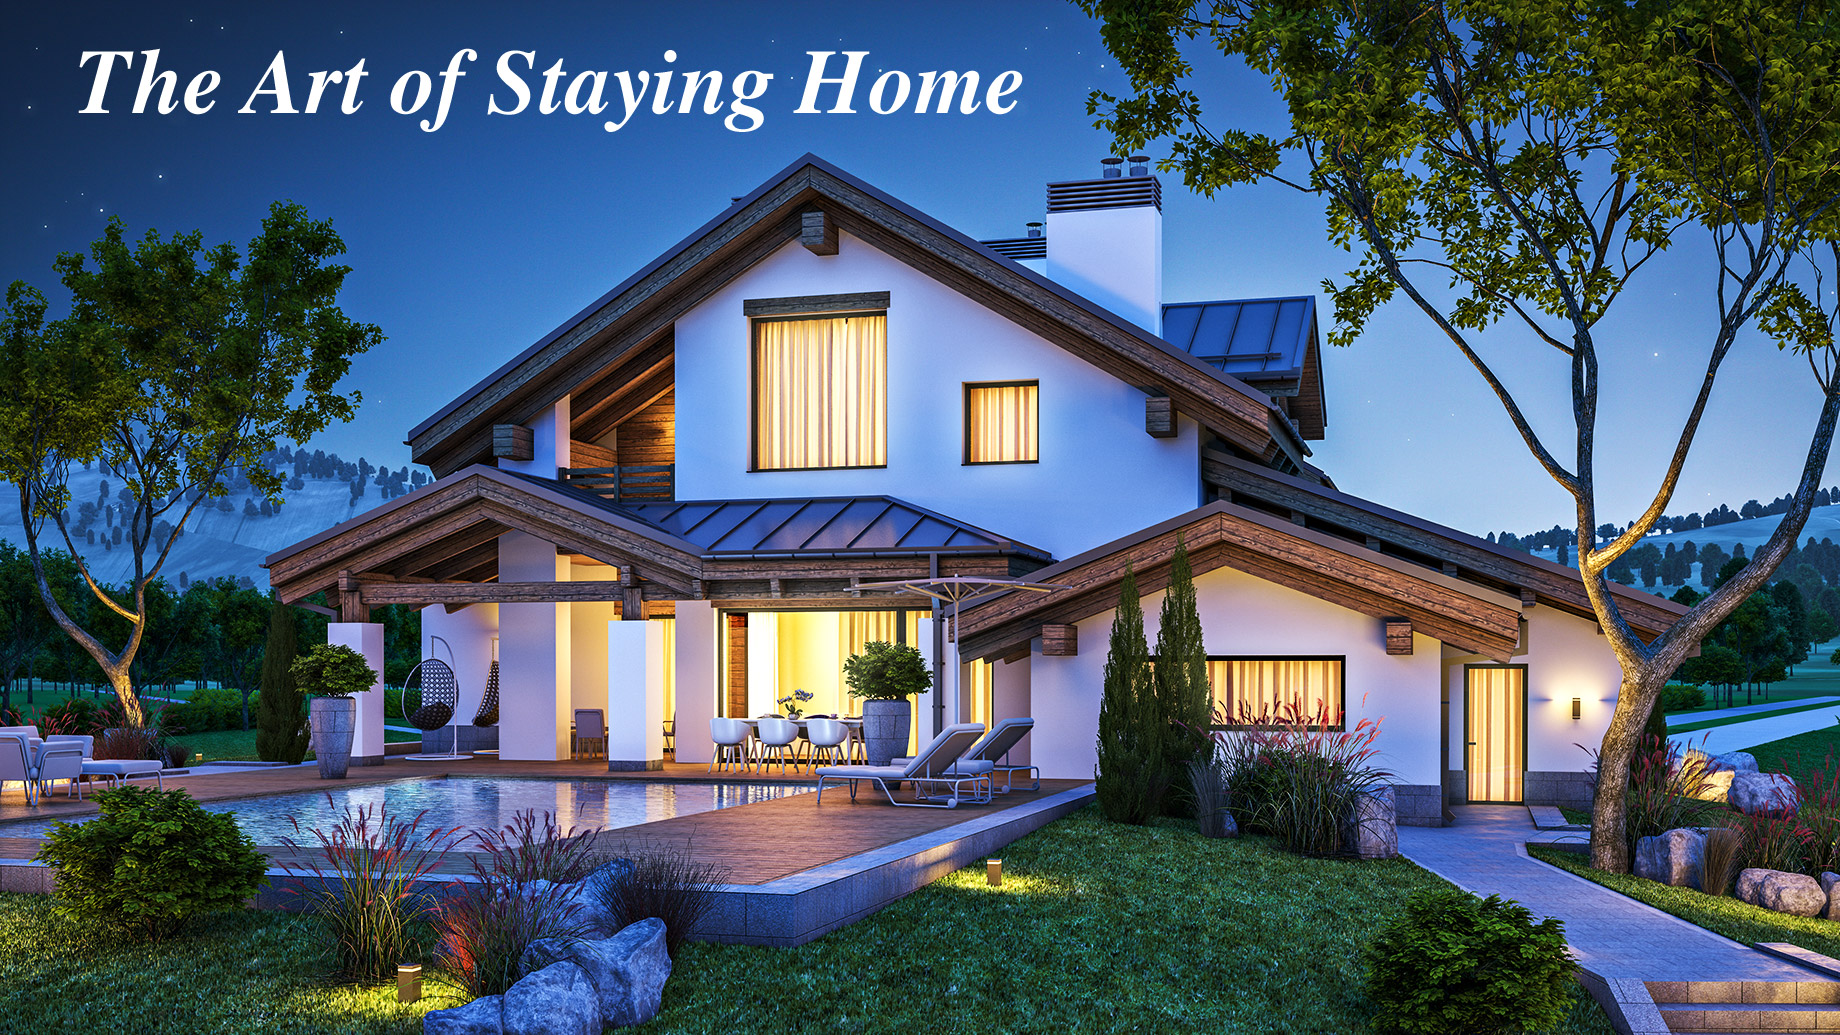 The Art of Staying Home